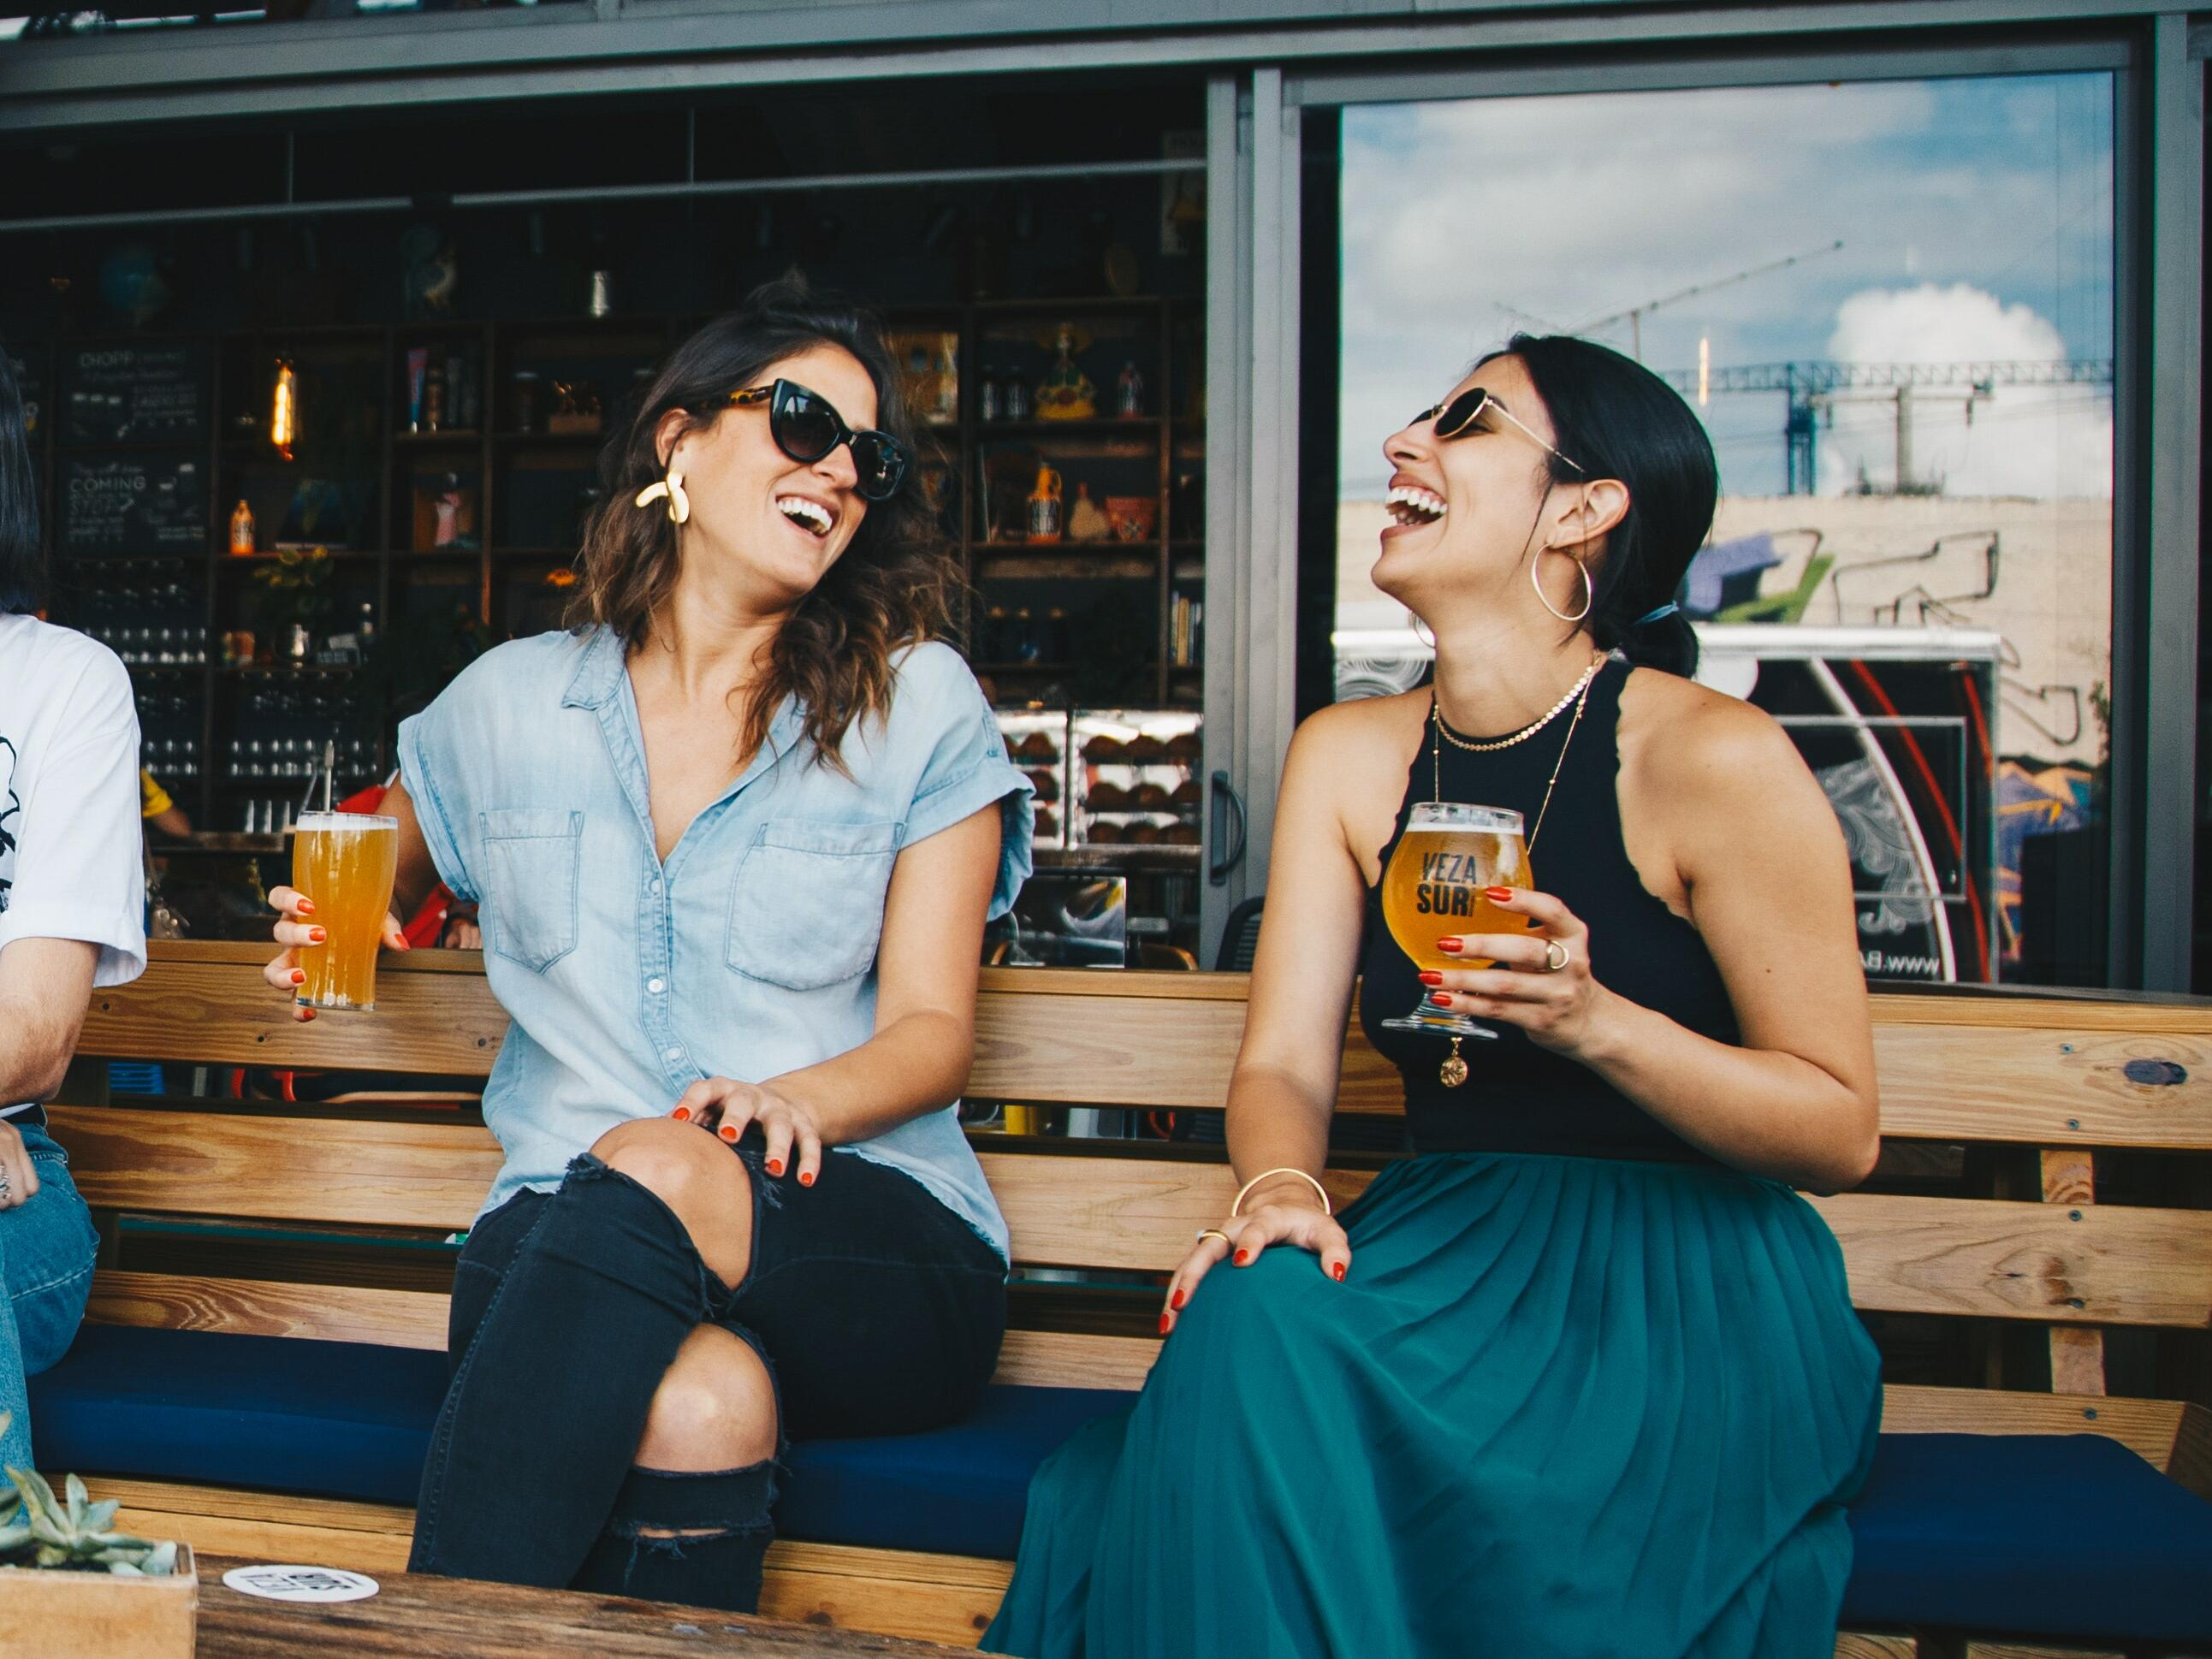 ladies laughing drinking beer